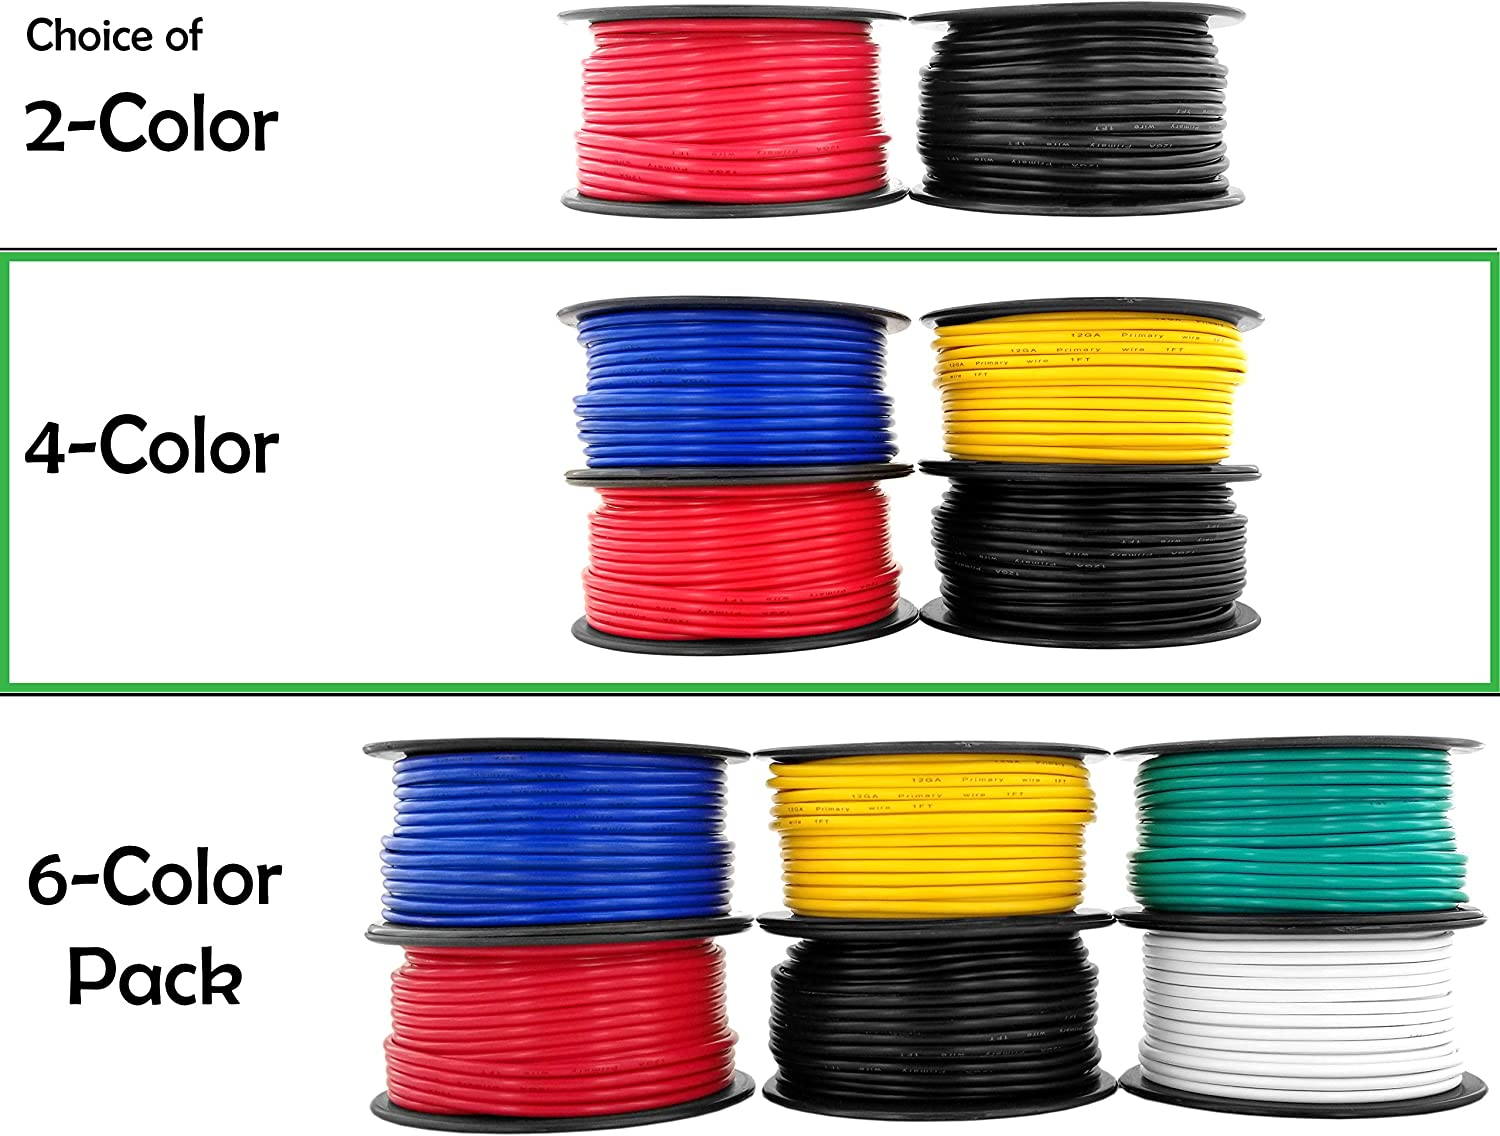 for 12V Automotive Trailer Light Car Audio Stereo Harness Wiring Also in 2 or 4 Color Combo 12 Gauge Copper Clad Aluminum Low Voltage Primary Wire 6 Color Combo 100 ft per Roll 600 feet Total